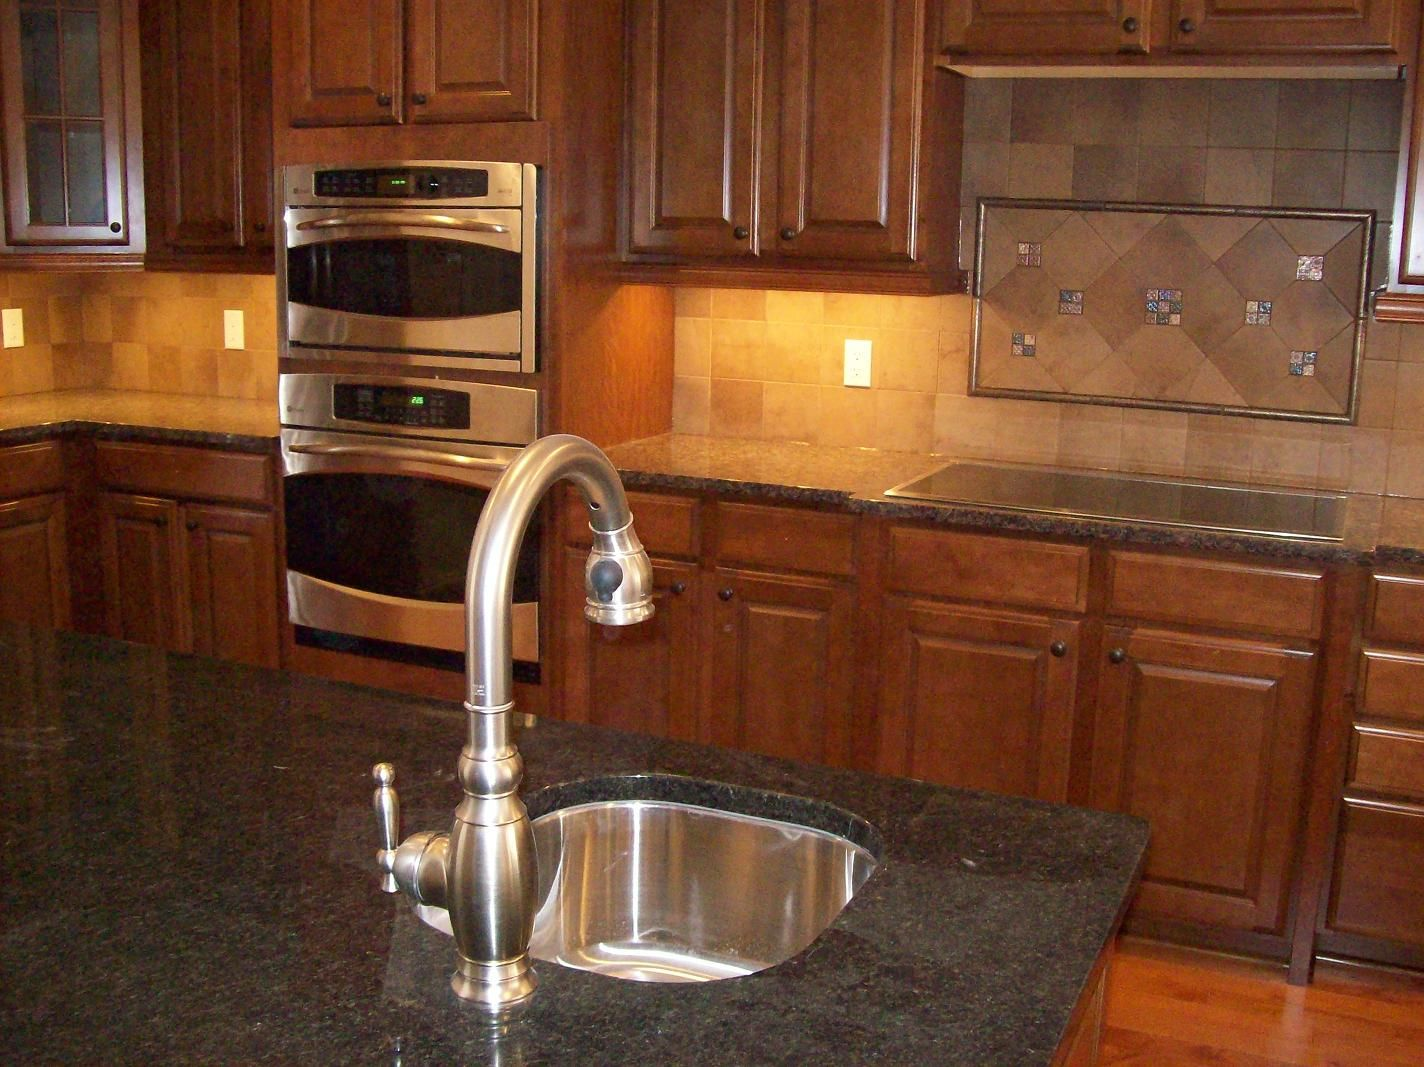 10 simple backsplash ideas for your kitchen backsplash for Kitchen ideas under 5000